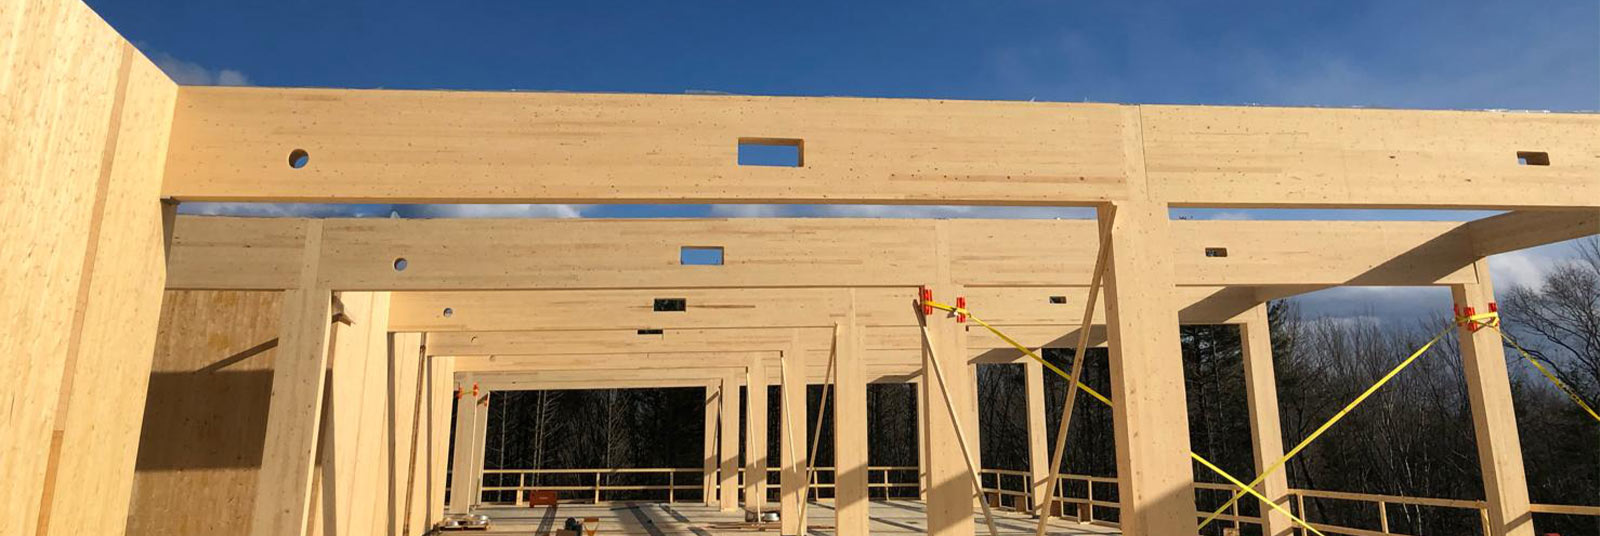 Construction at 90 Arboretum - a mass timber frame office building in Newington, New Hampshire.